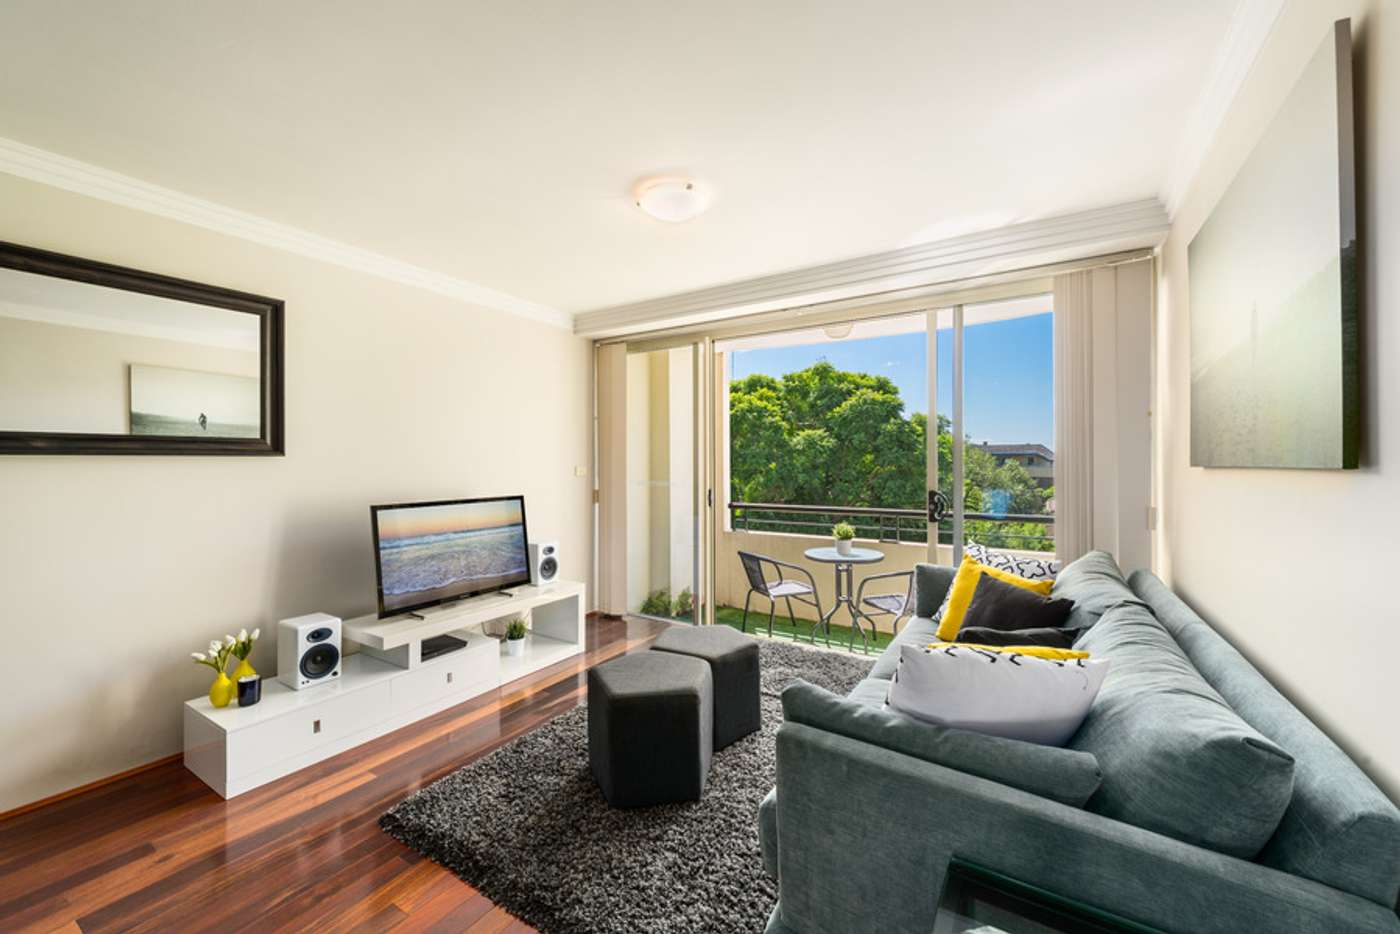 Main view of Homely apartment listing, 13/19A Young Street, Neutral Bay NSW 2089